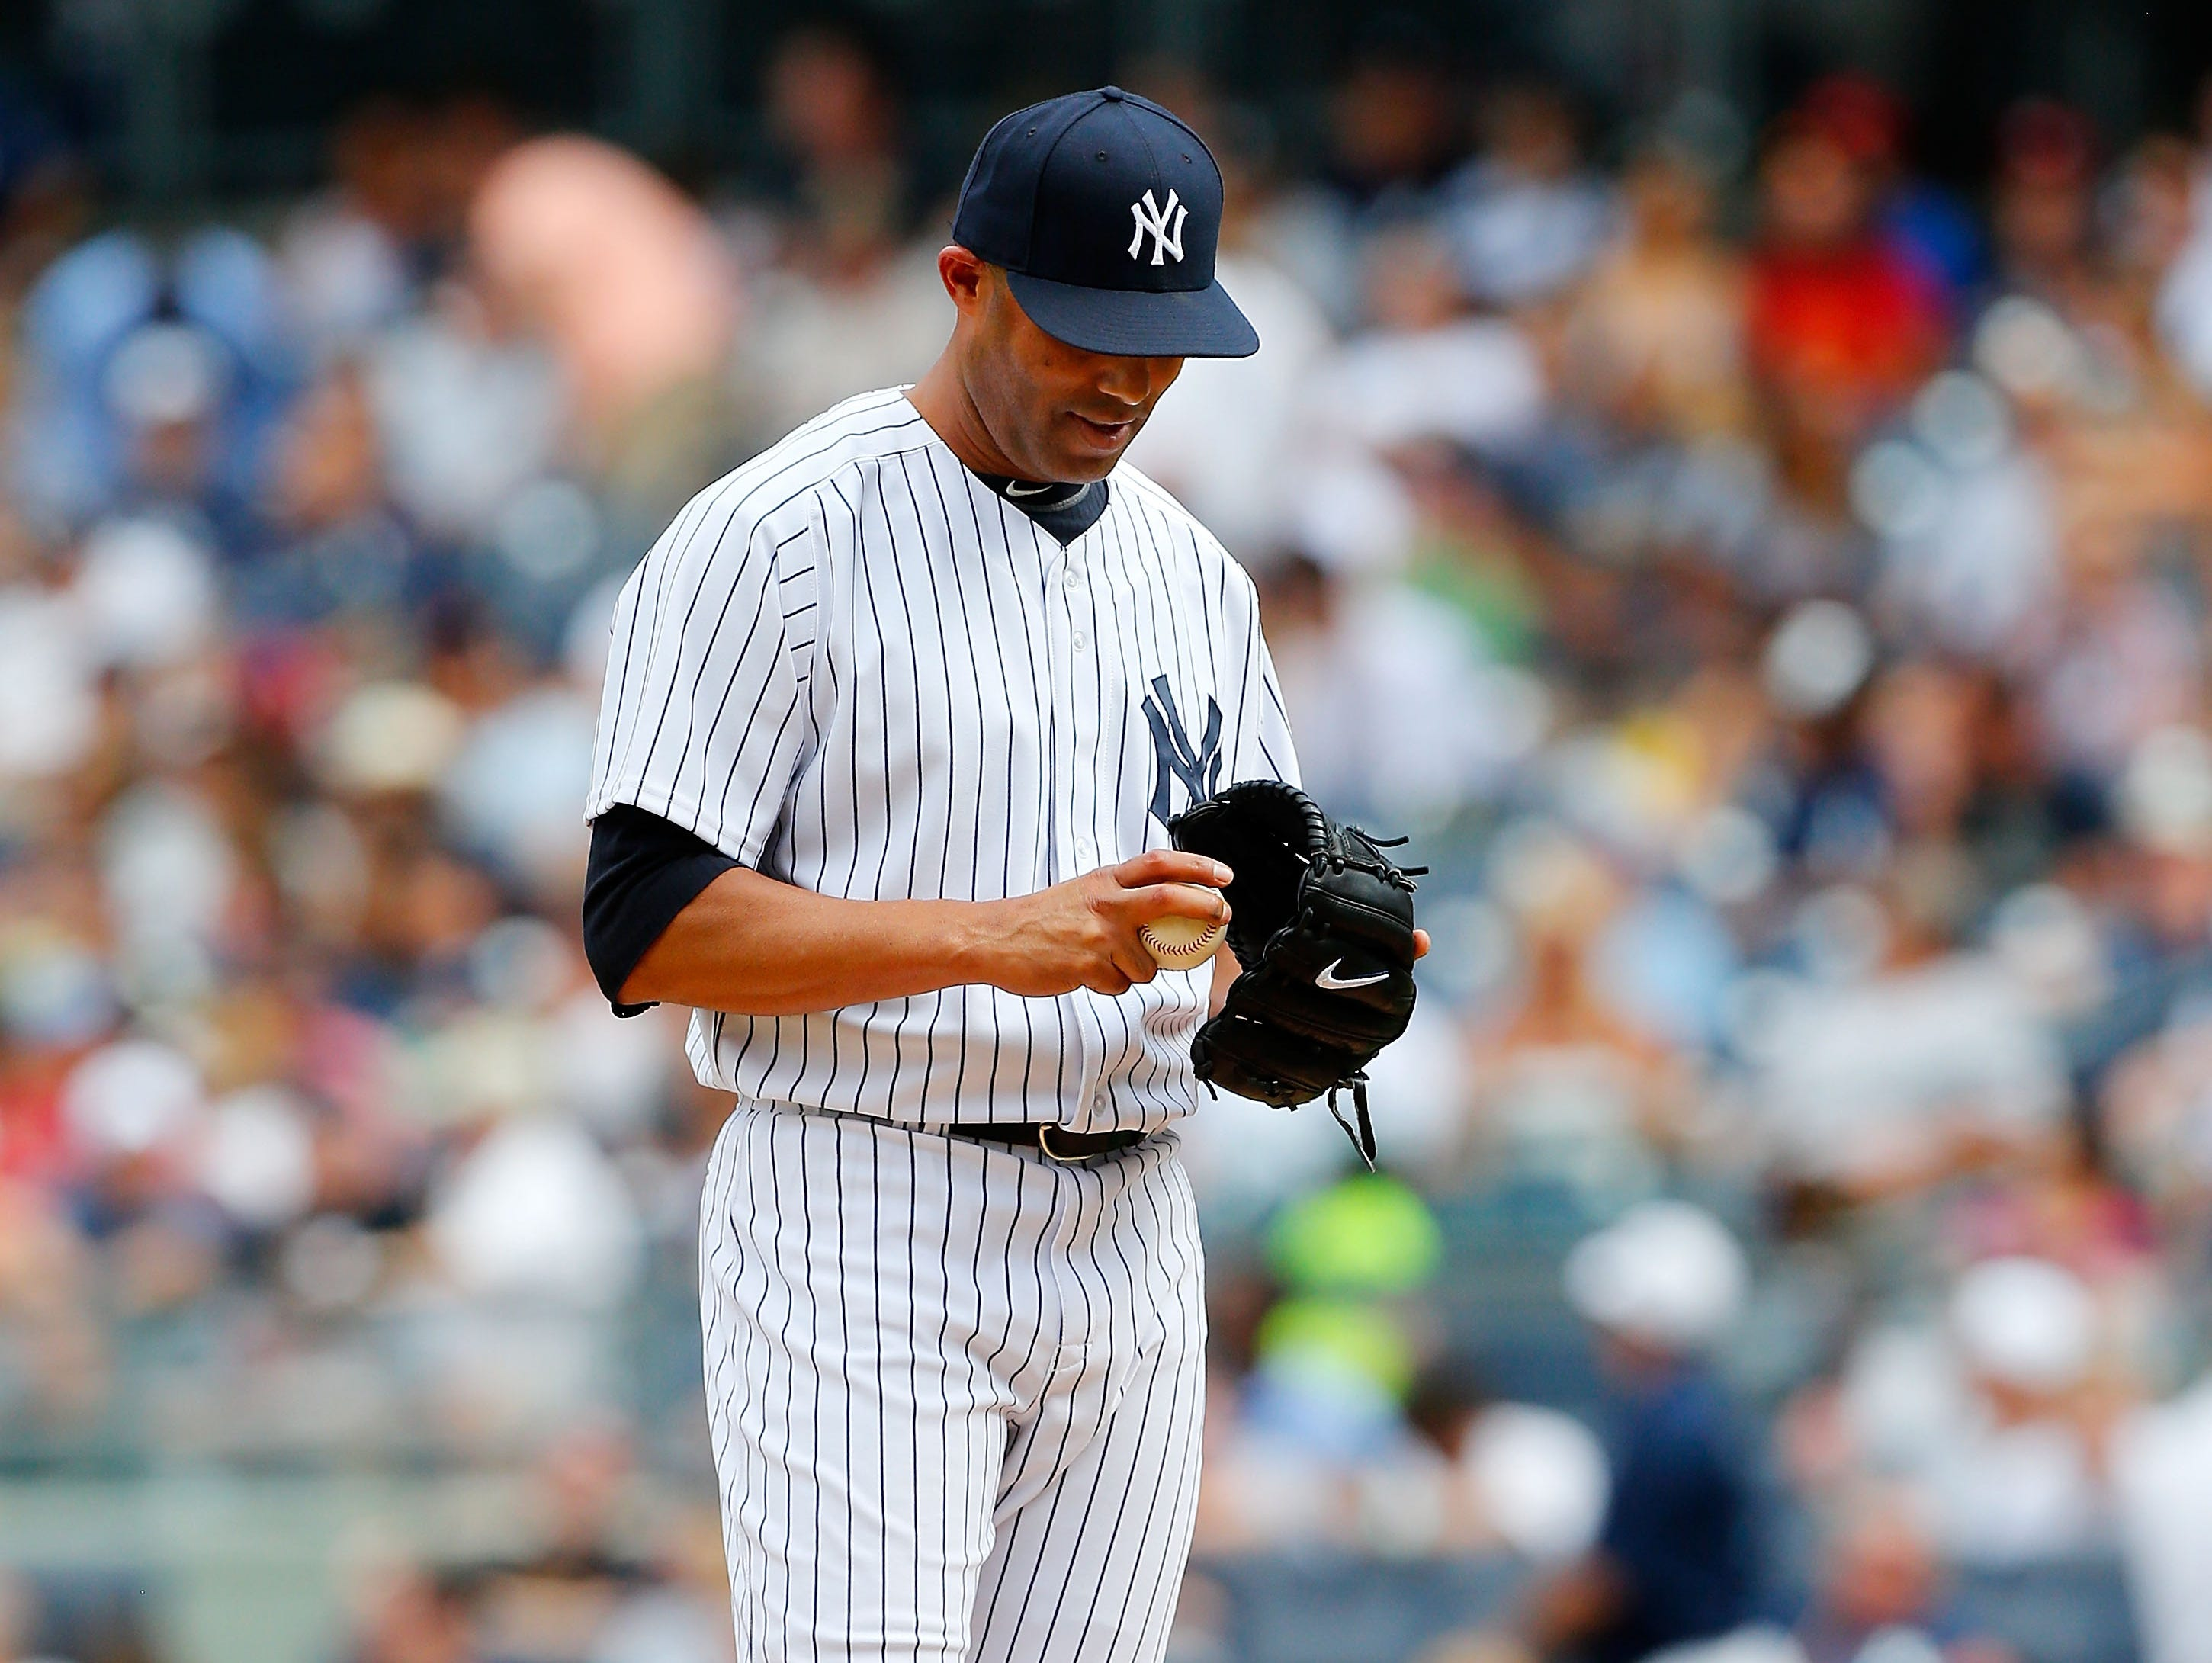 Mariano Rivera blows a third straight save for the first time in his famed career after allowing home runs to Miguel Cabrera and Victor Martinez in the 9th inning. Rivera has a record 643 saves, but had never failed three in a row in 936 relief appearances.